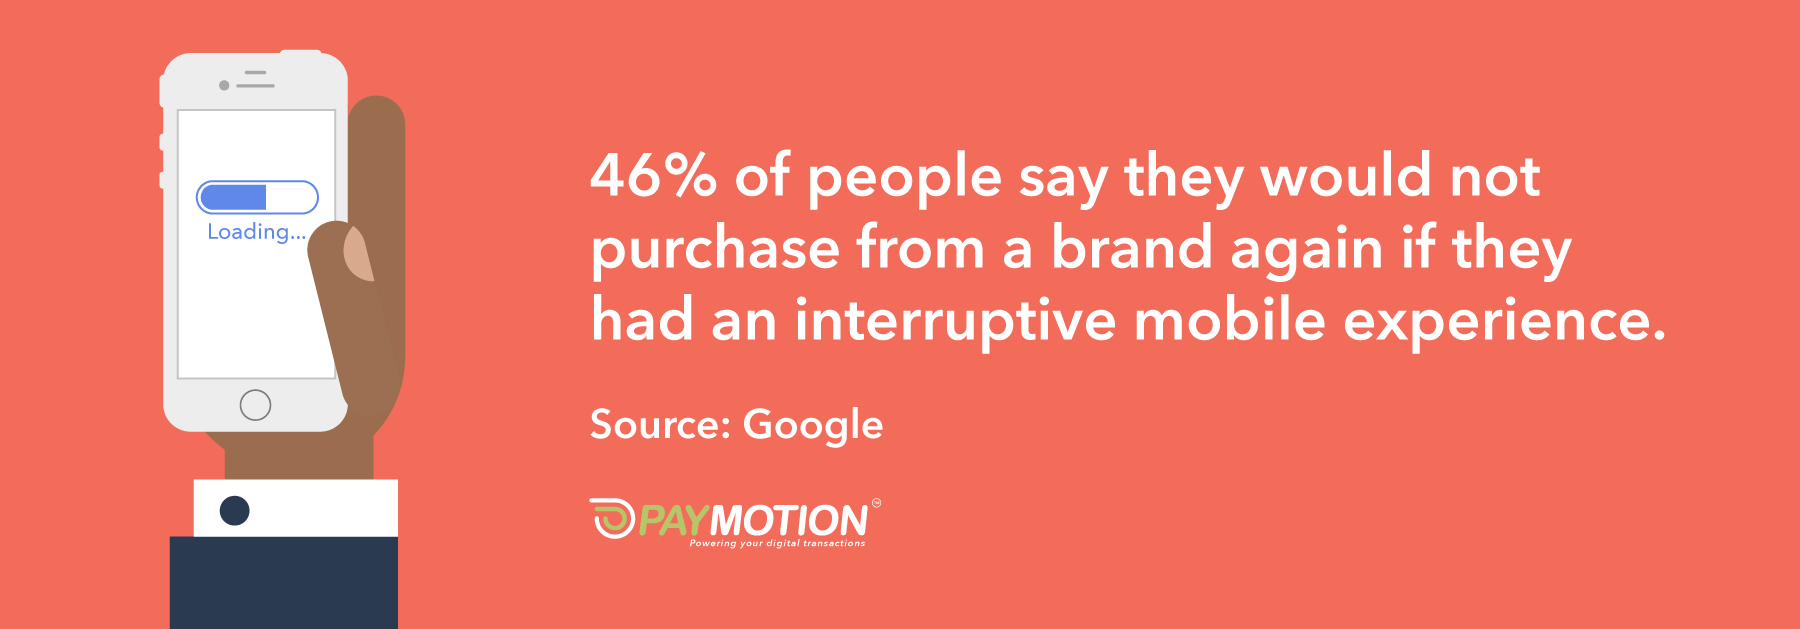 46% of people say they would not purchase from a brand again if they had an interruptive mobile experience